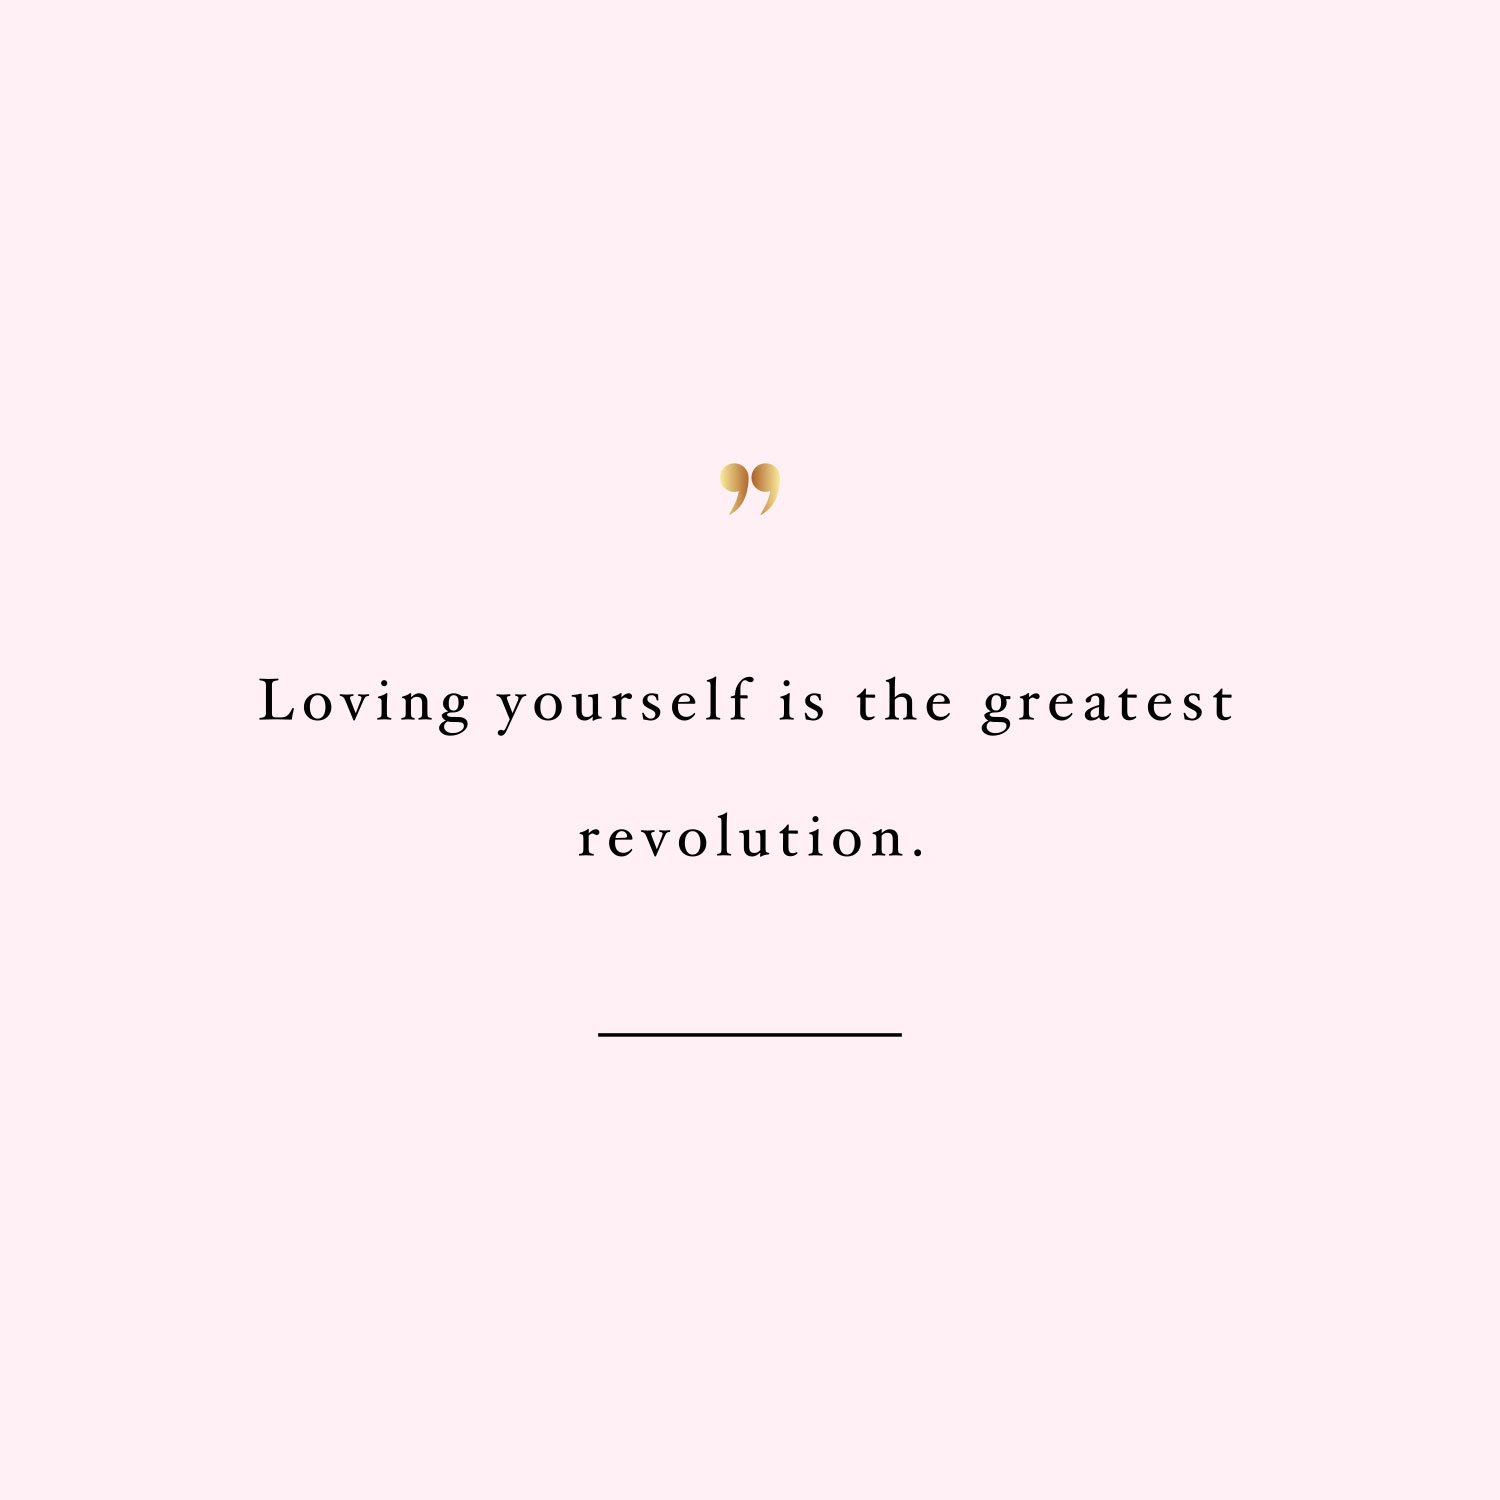 Quotes Of Loving Yourself Loving Yourself Revolution  Healthy Lifestyle Motivation